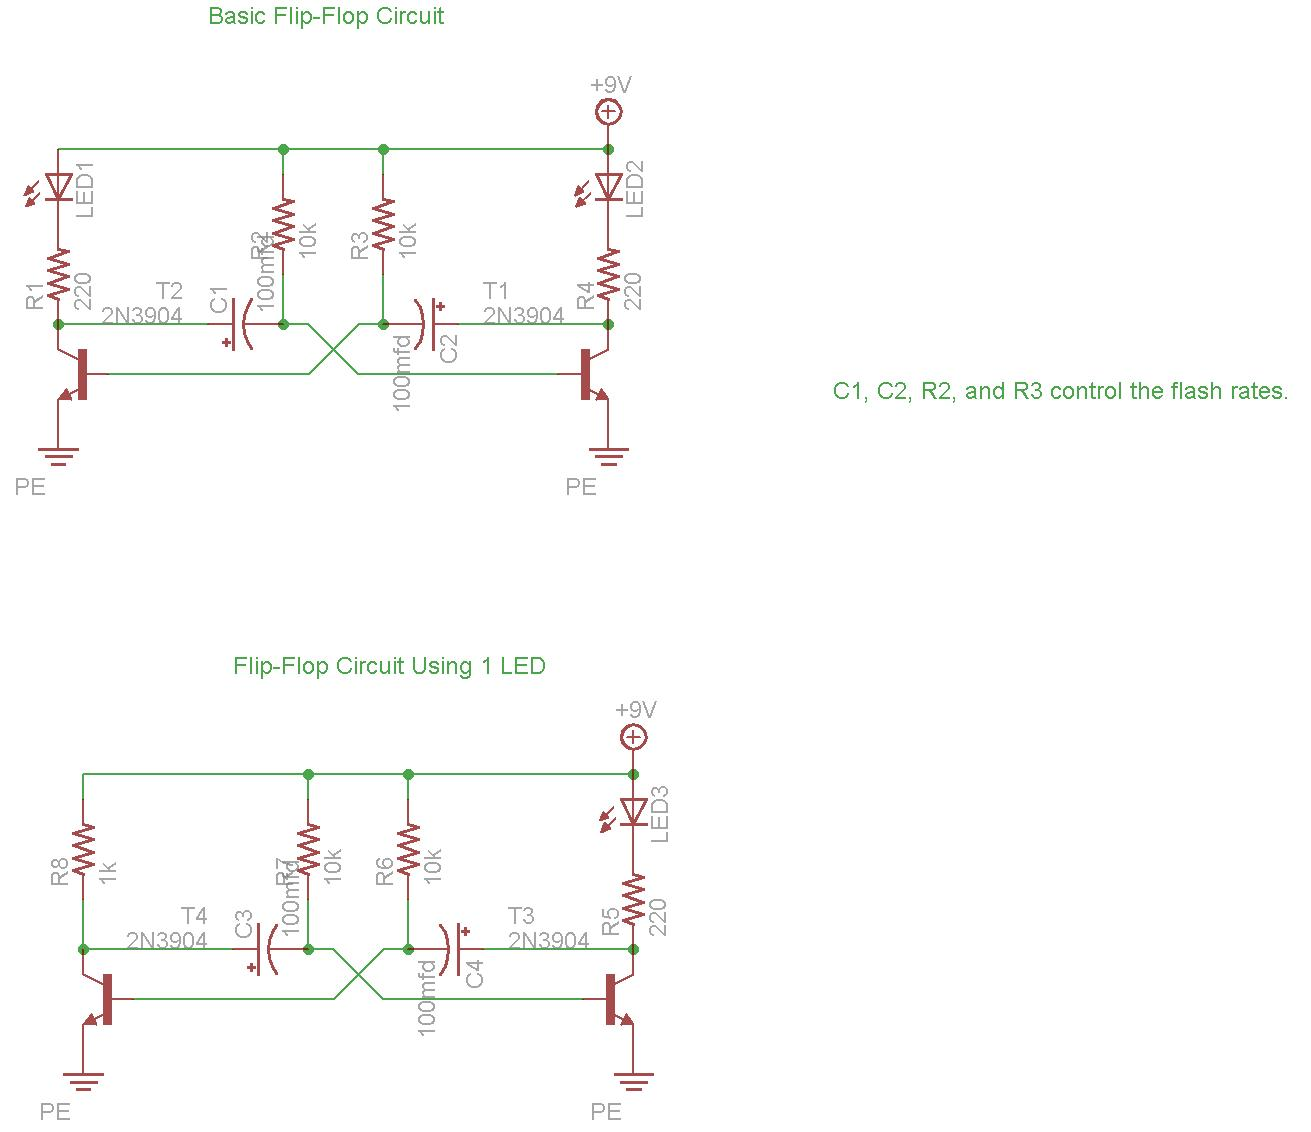 Basic Flip-Flop Circuit Diagram Download